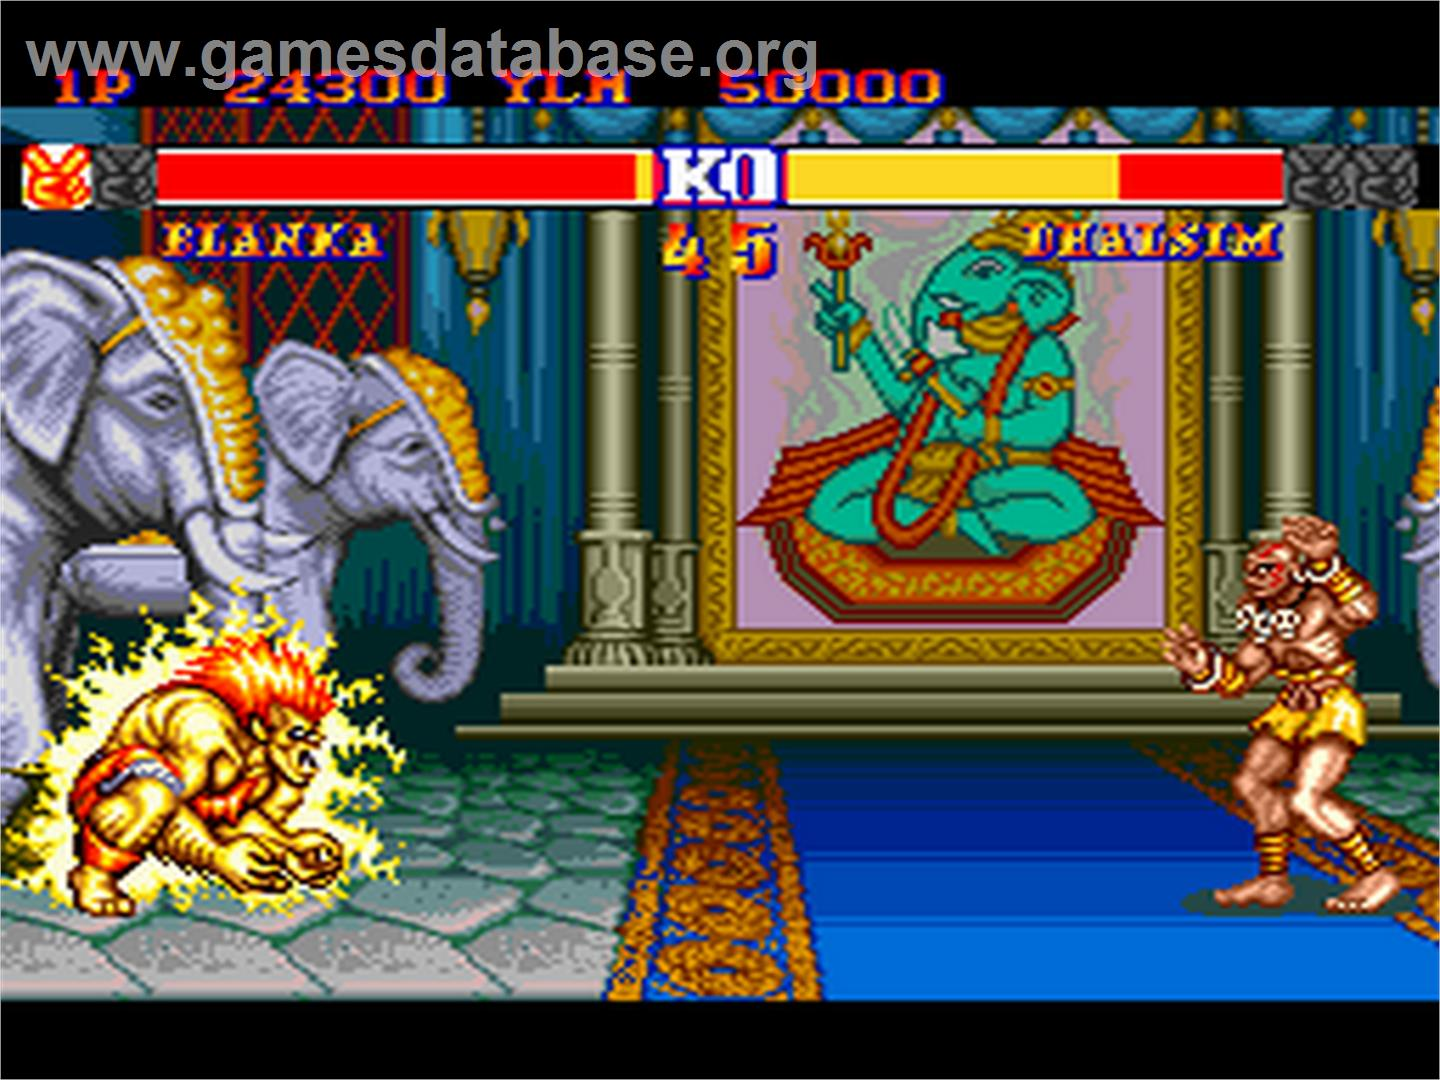 of Street Fighter II': Special Champion Edition on the NEC PC Engine